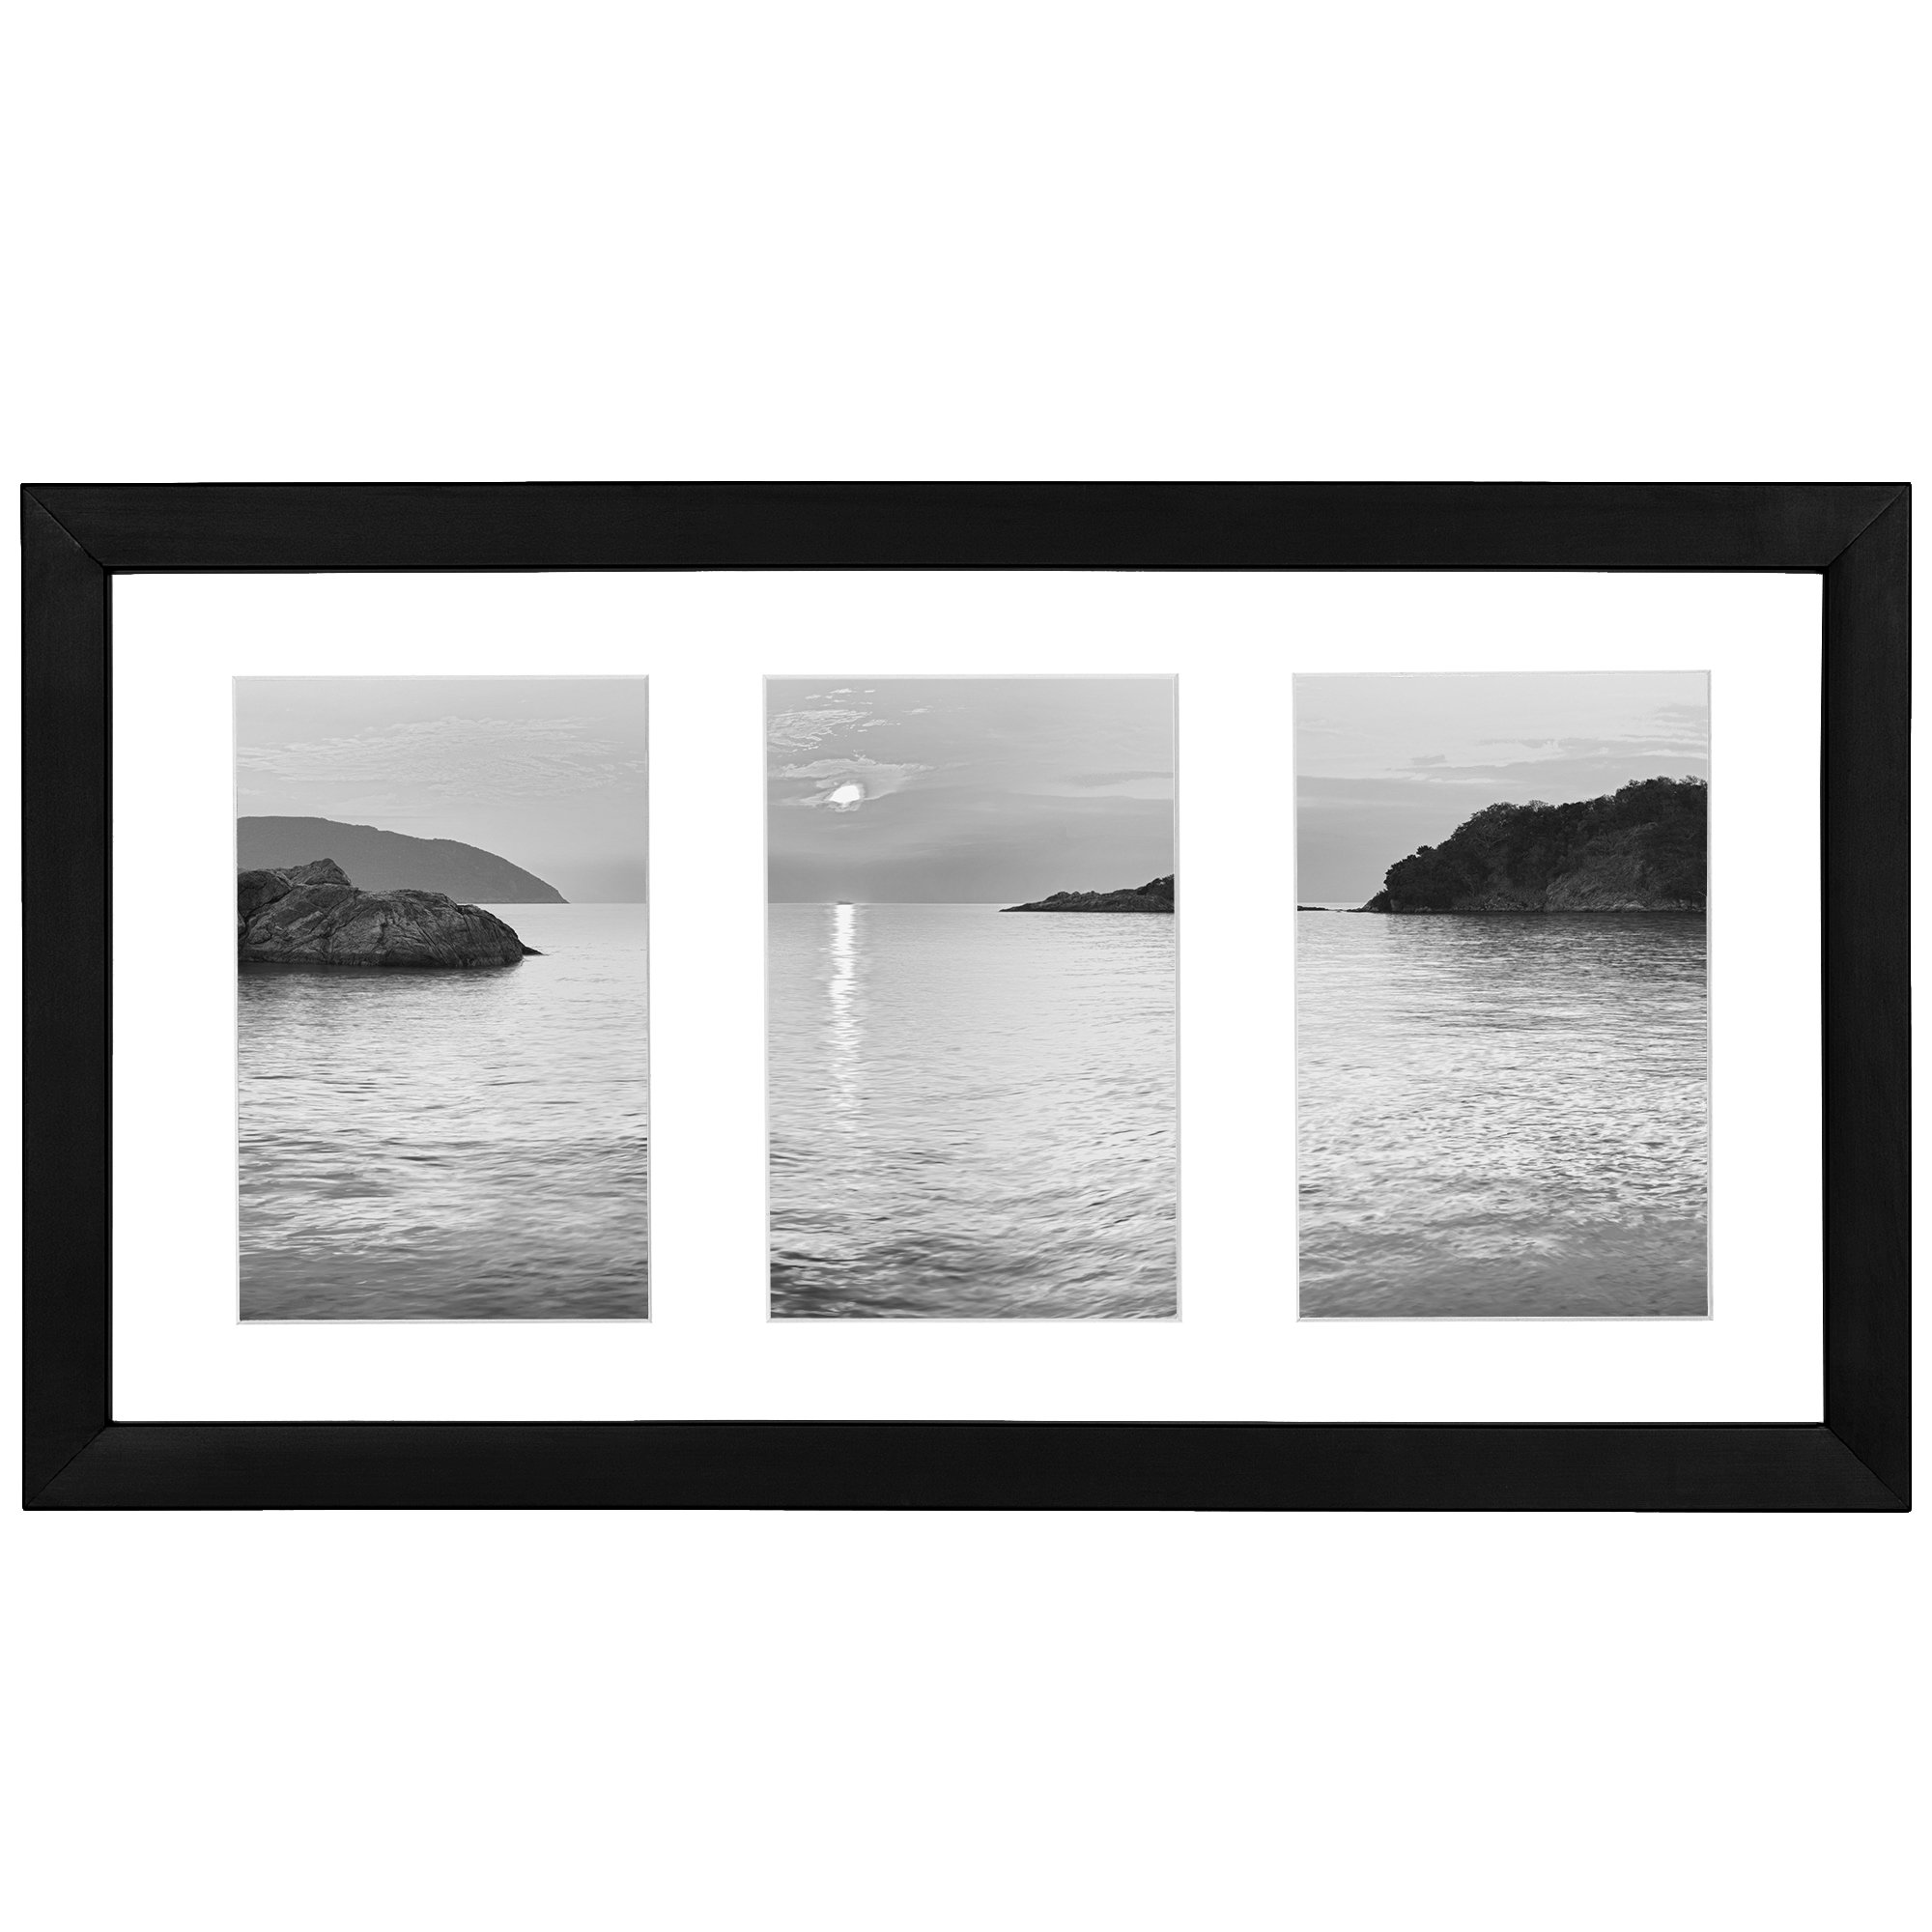 Americanflat 8x14 Inch Collage Picture Frame - Display Three 4x6 Inch Photos on Your Wall - Perfect As a Family Collage Picture Frame by Americanflat